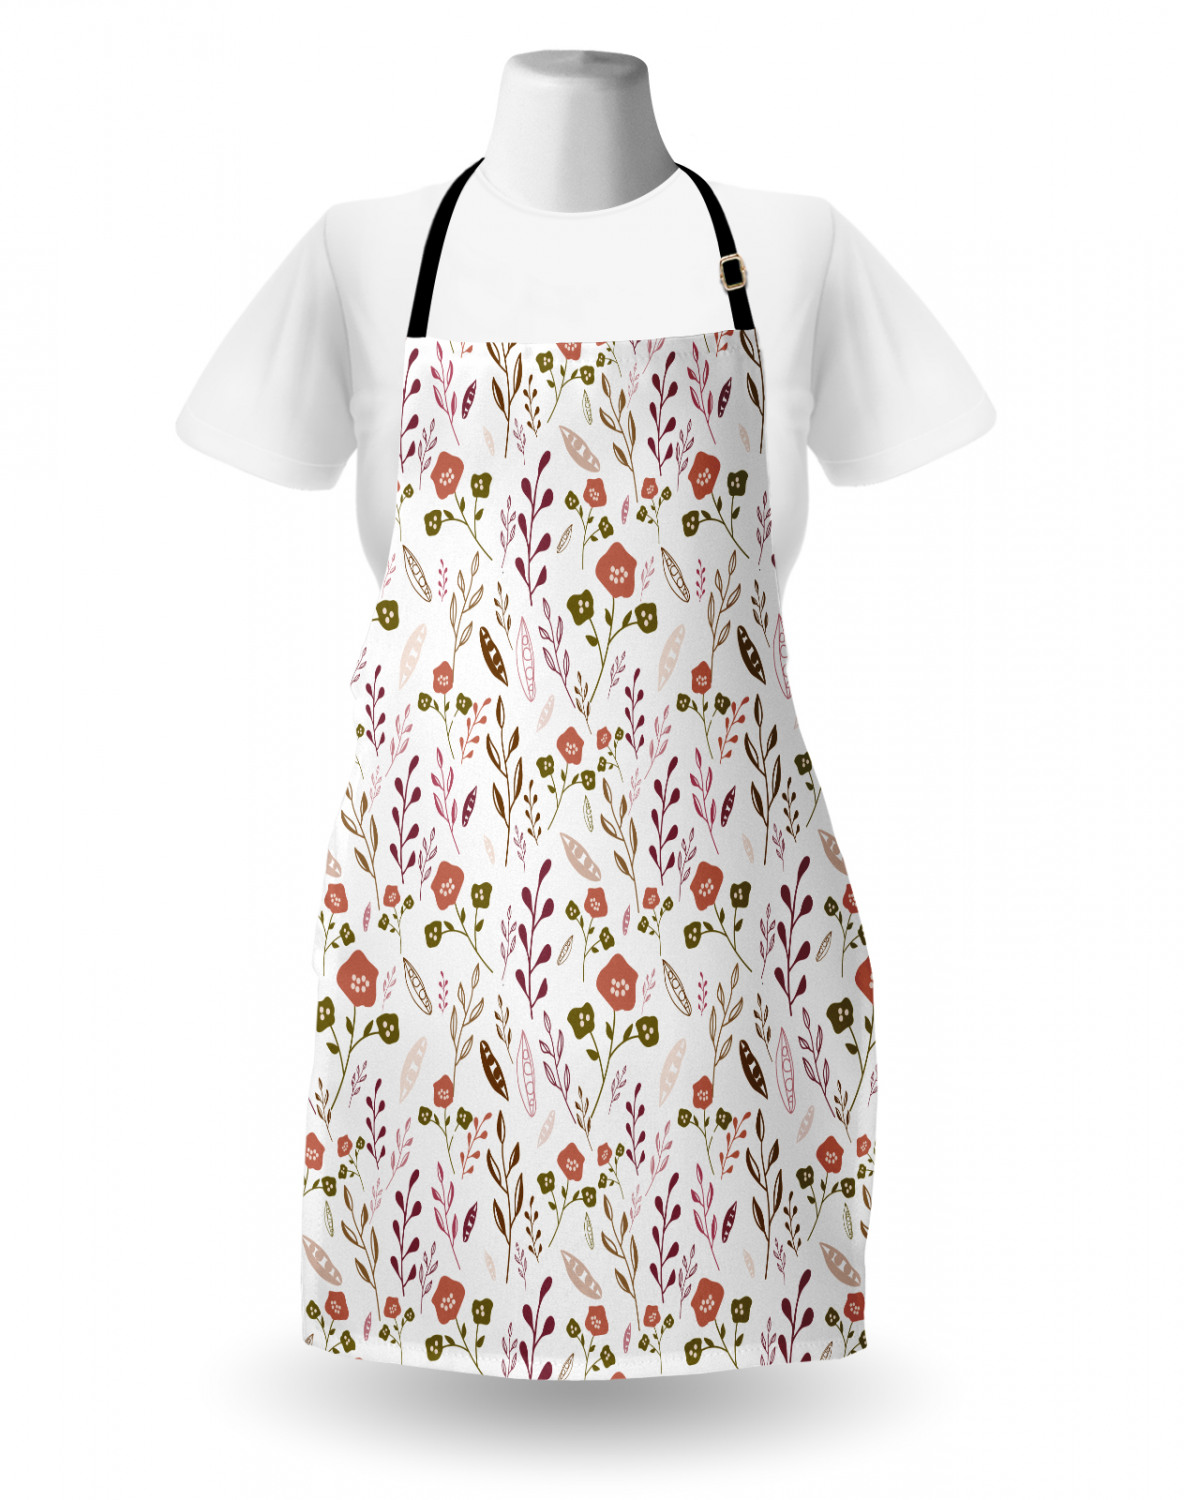 Ambesonne-Outdoor-Use-Apron-with-Adjustable-Neck-Strap-for-Gardening-and-Cooking miniatura 146